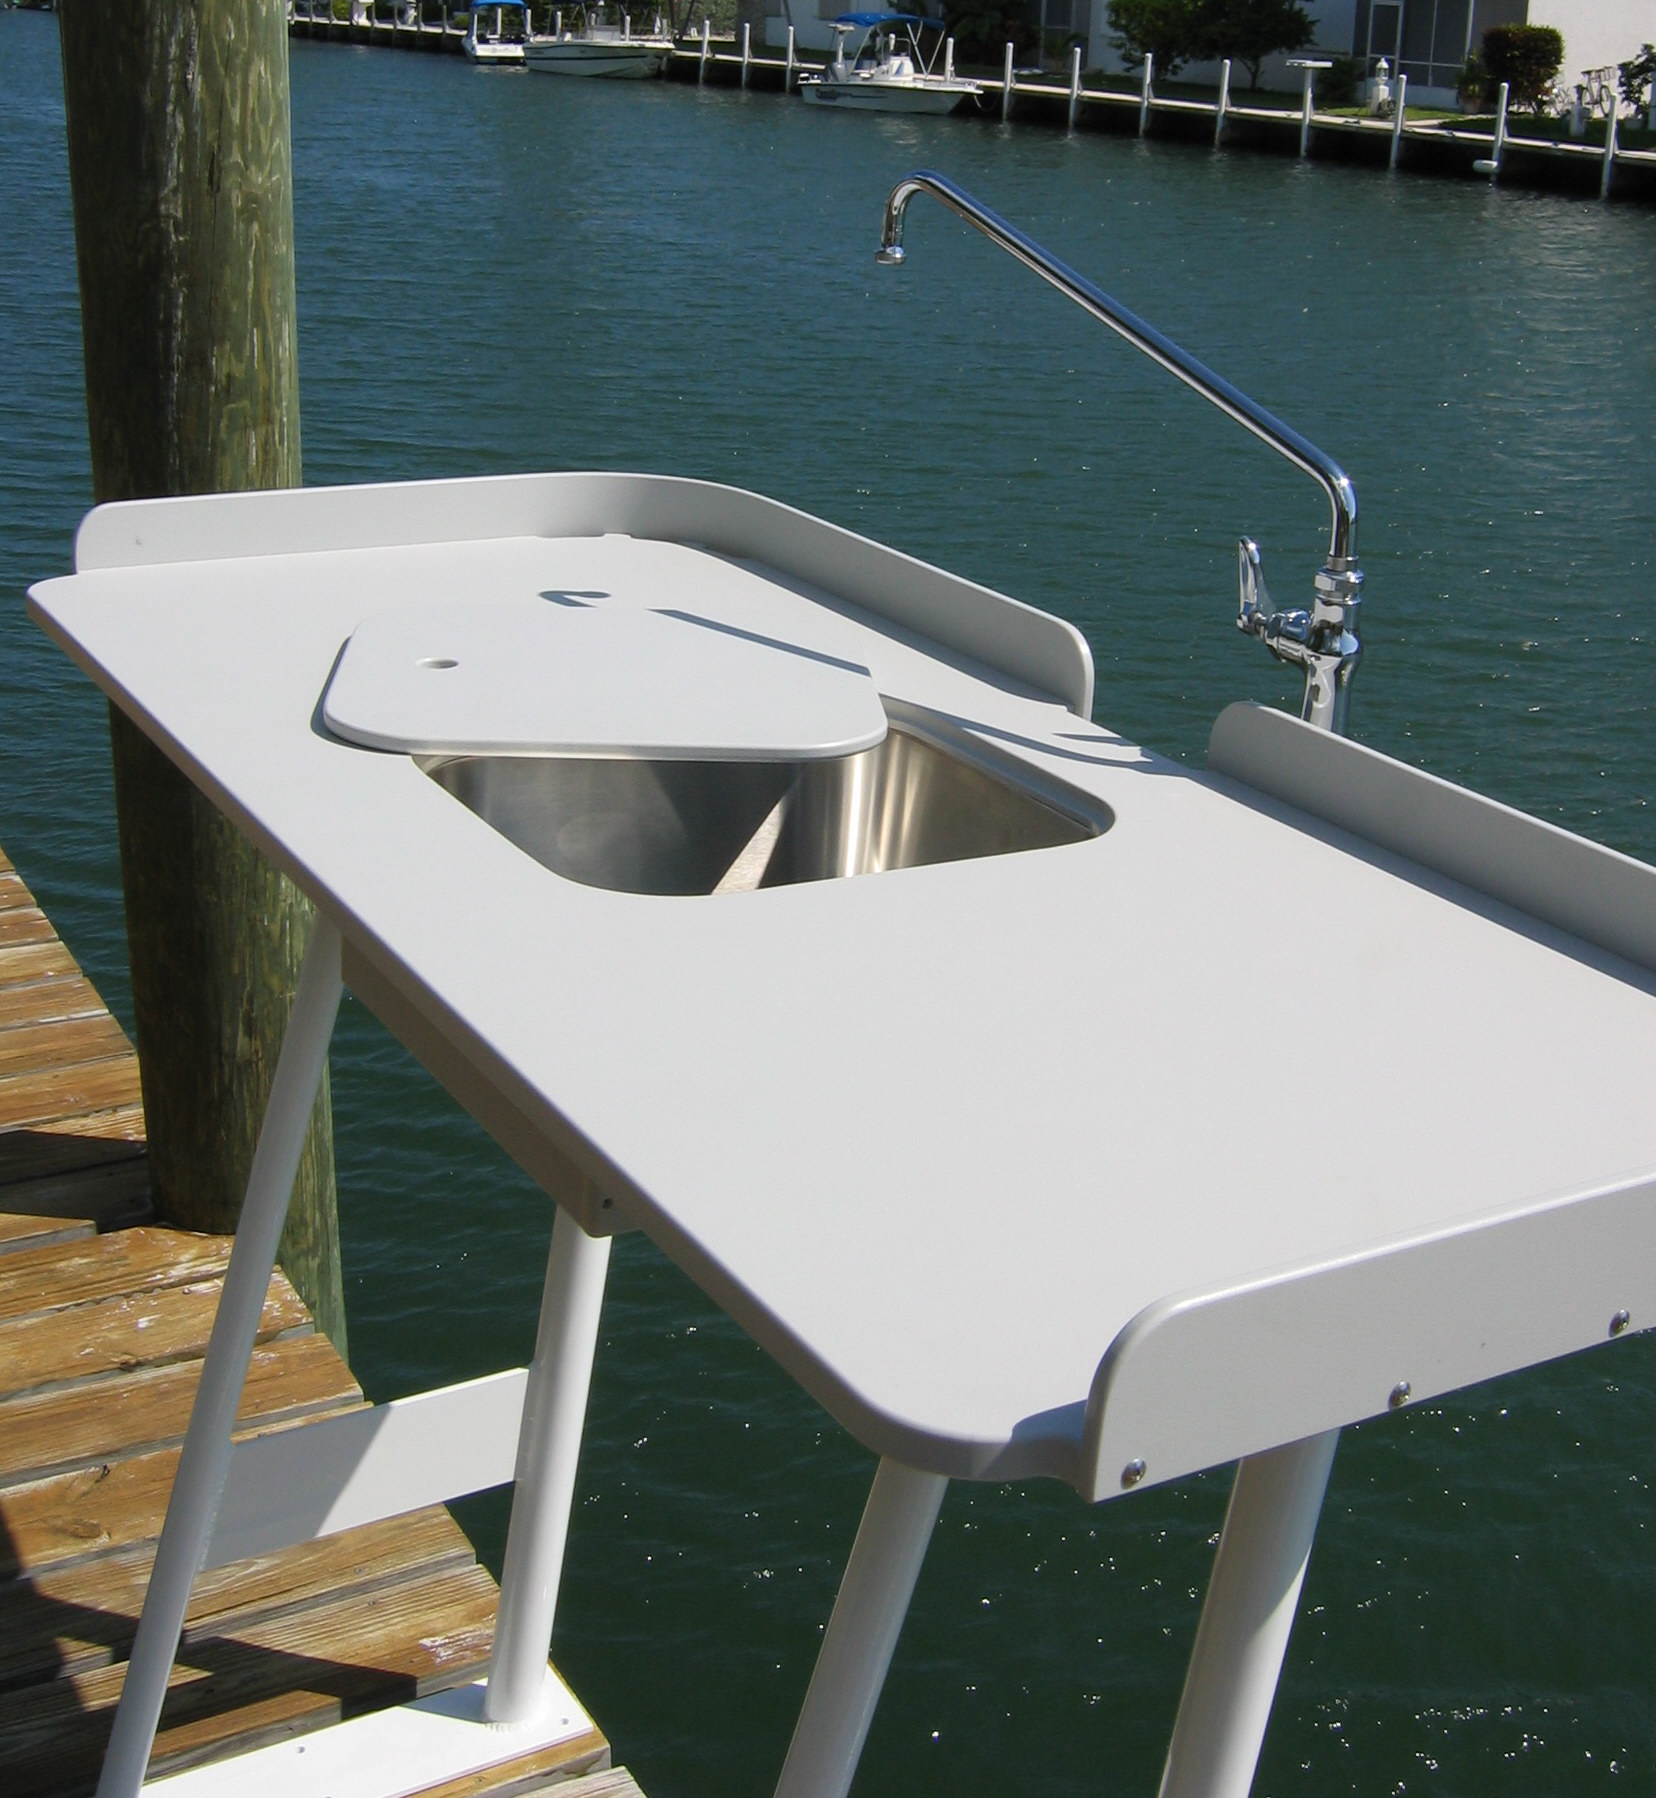 King starboard fish cleaning station 54 x 23 top for Dock fish cleaning station